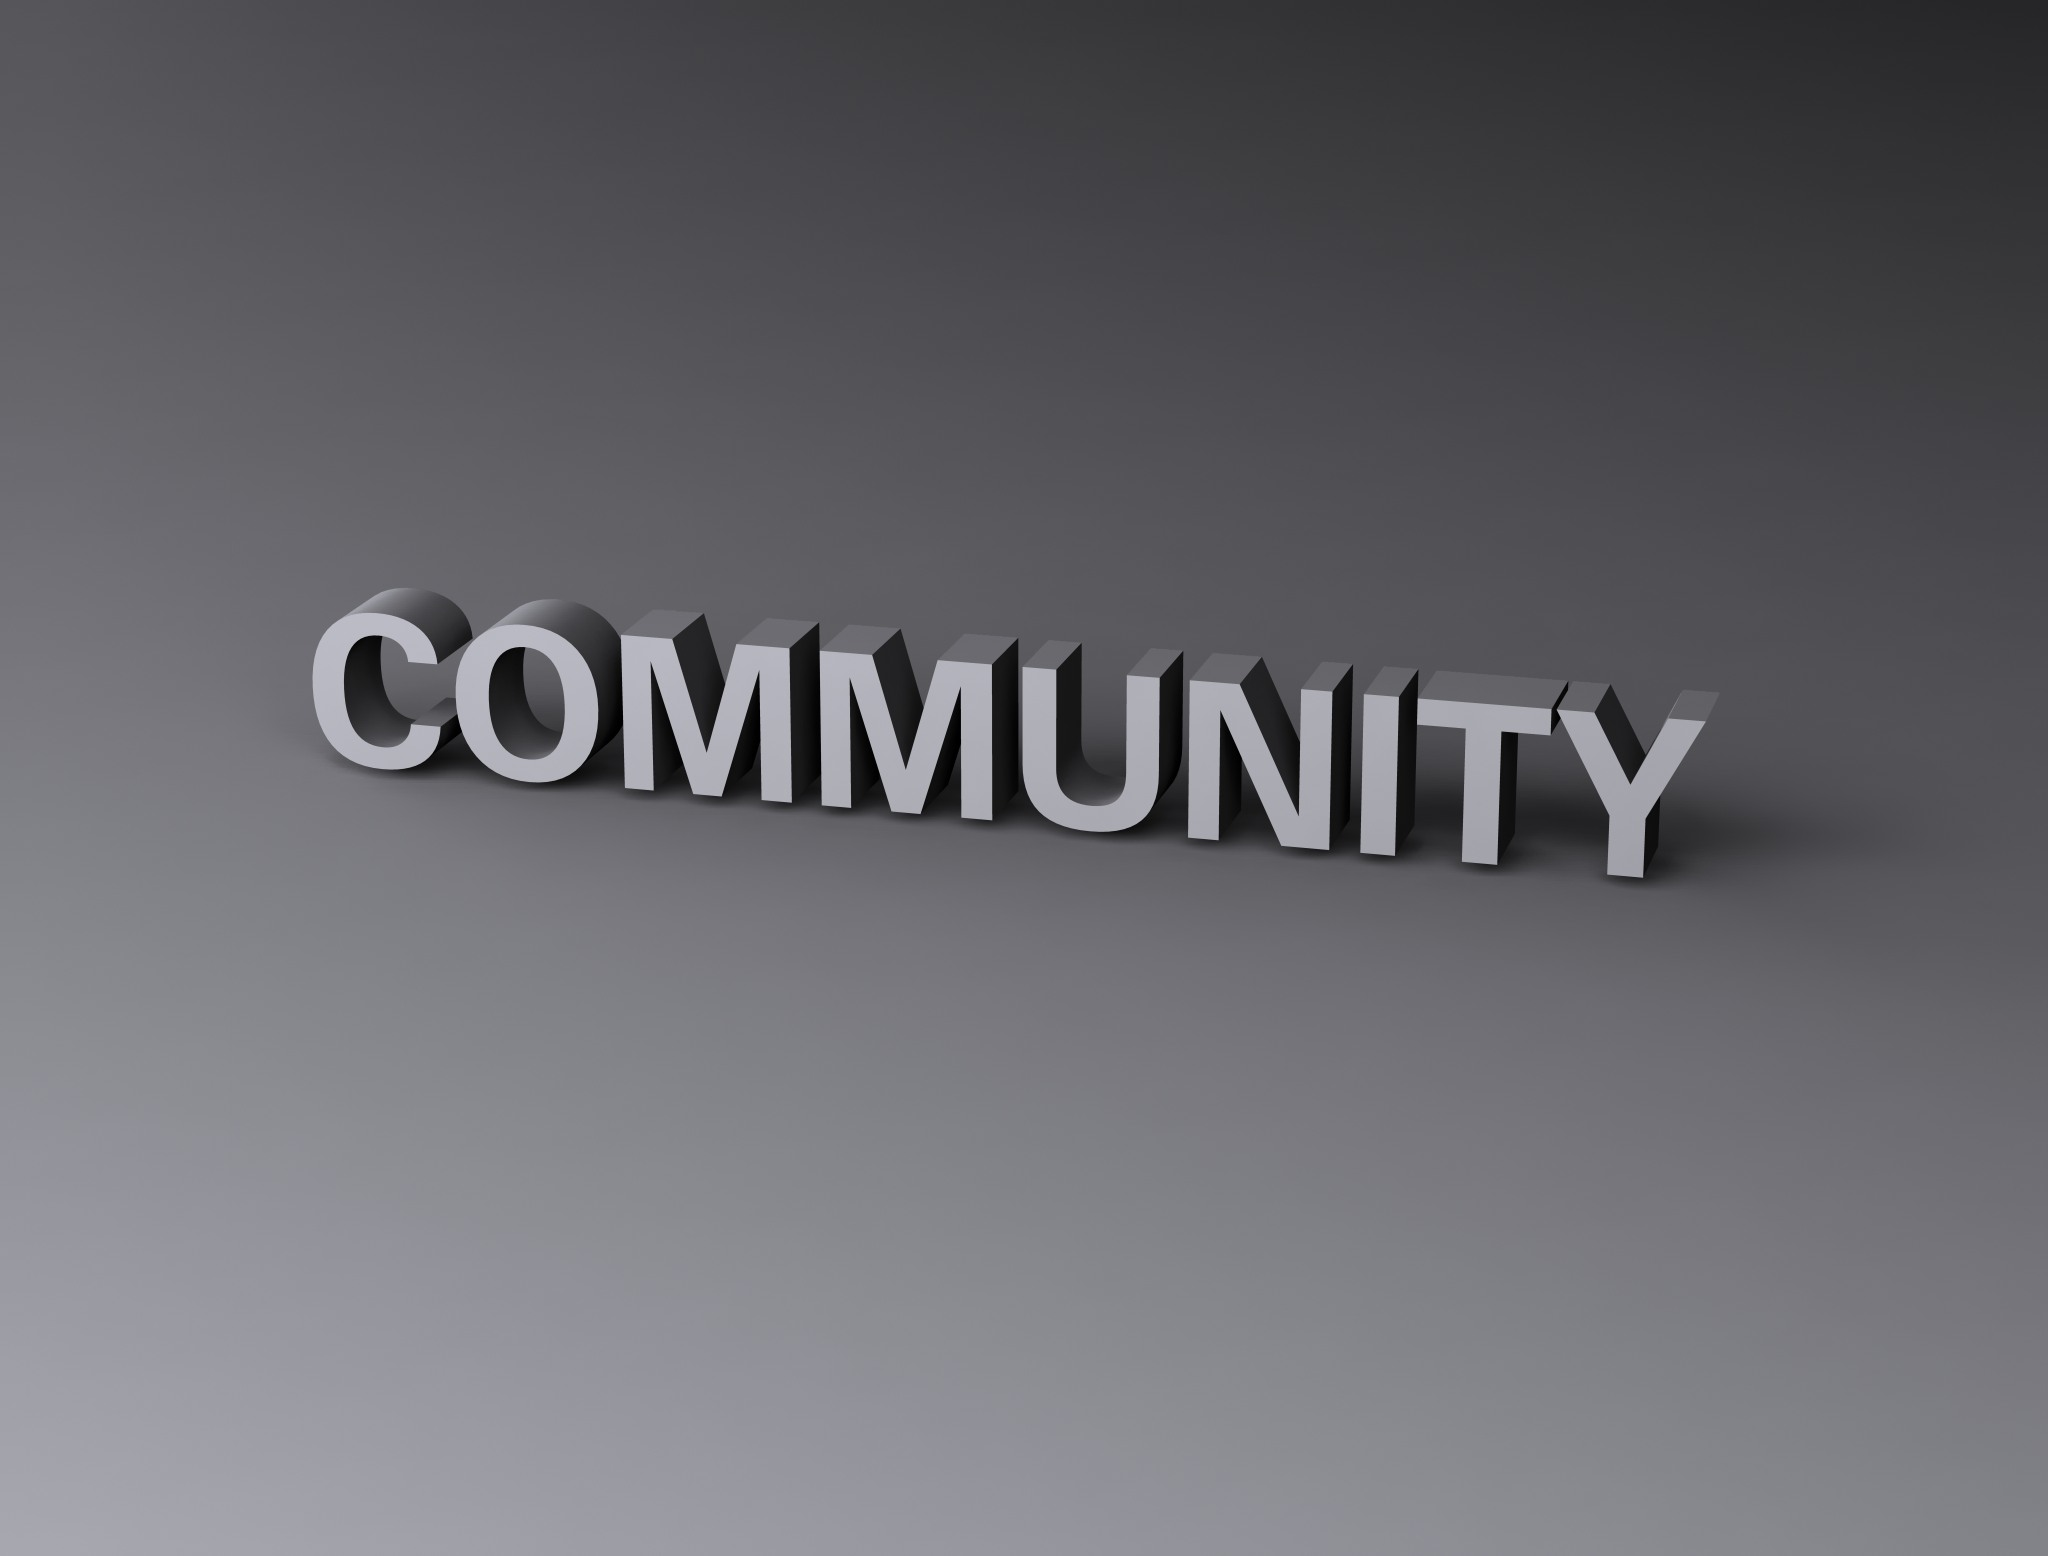 Community, 3d, Render, Text, Typography, HQ Photo